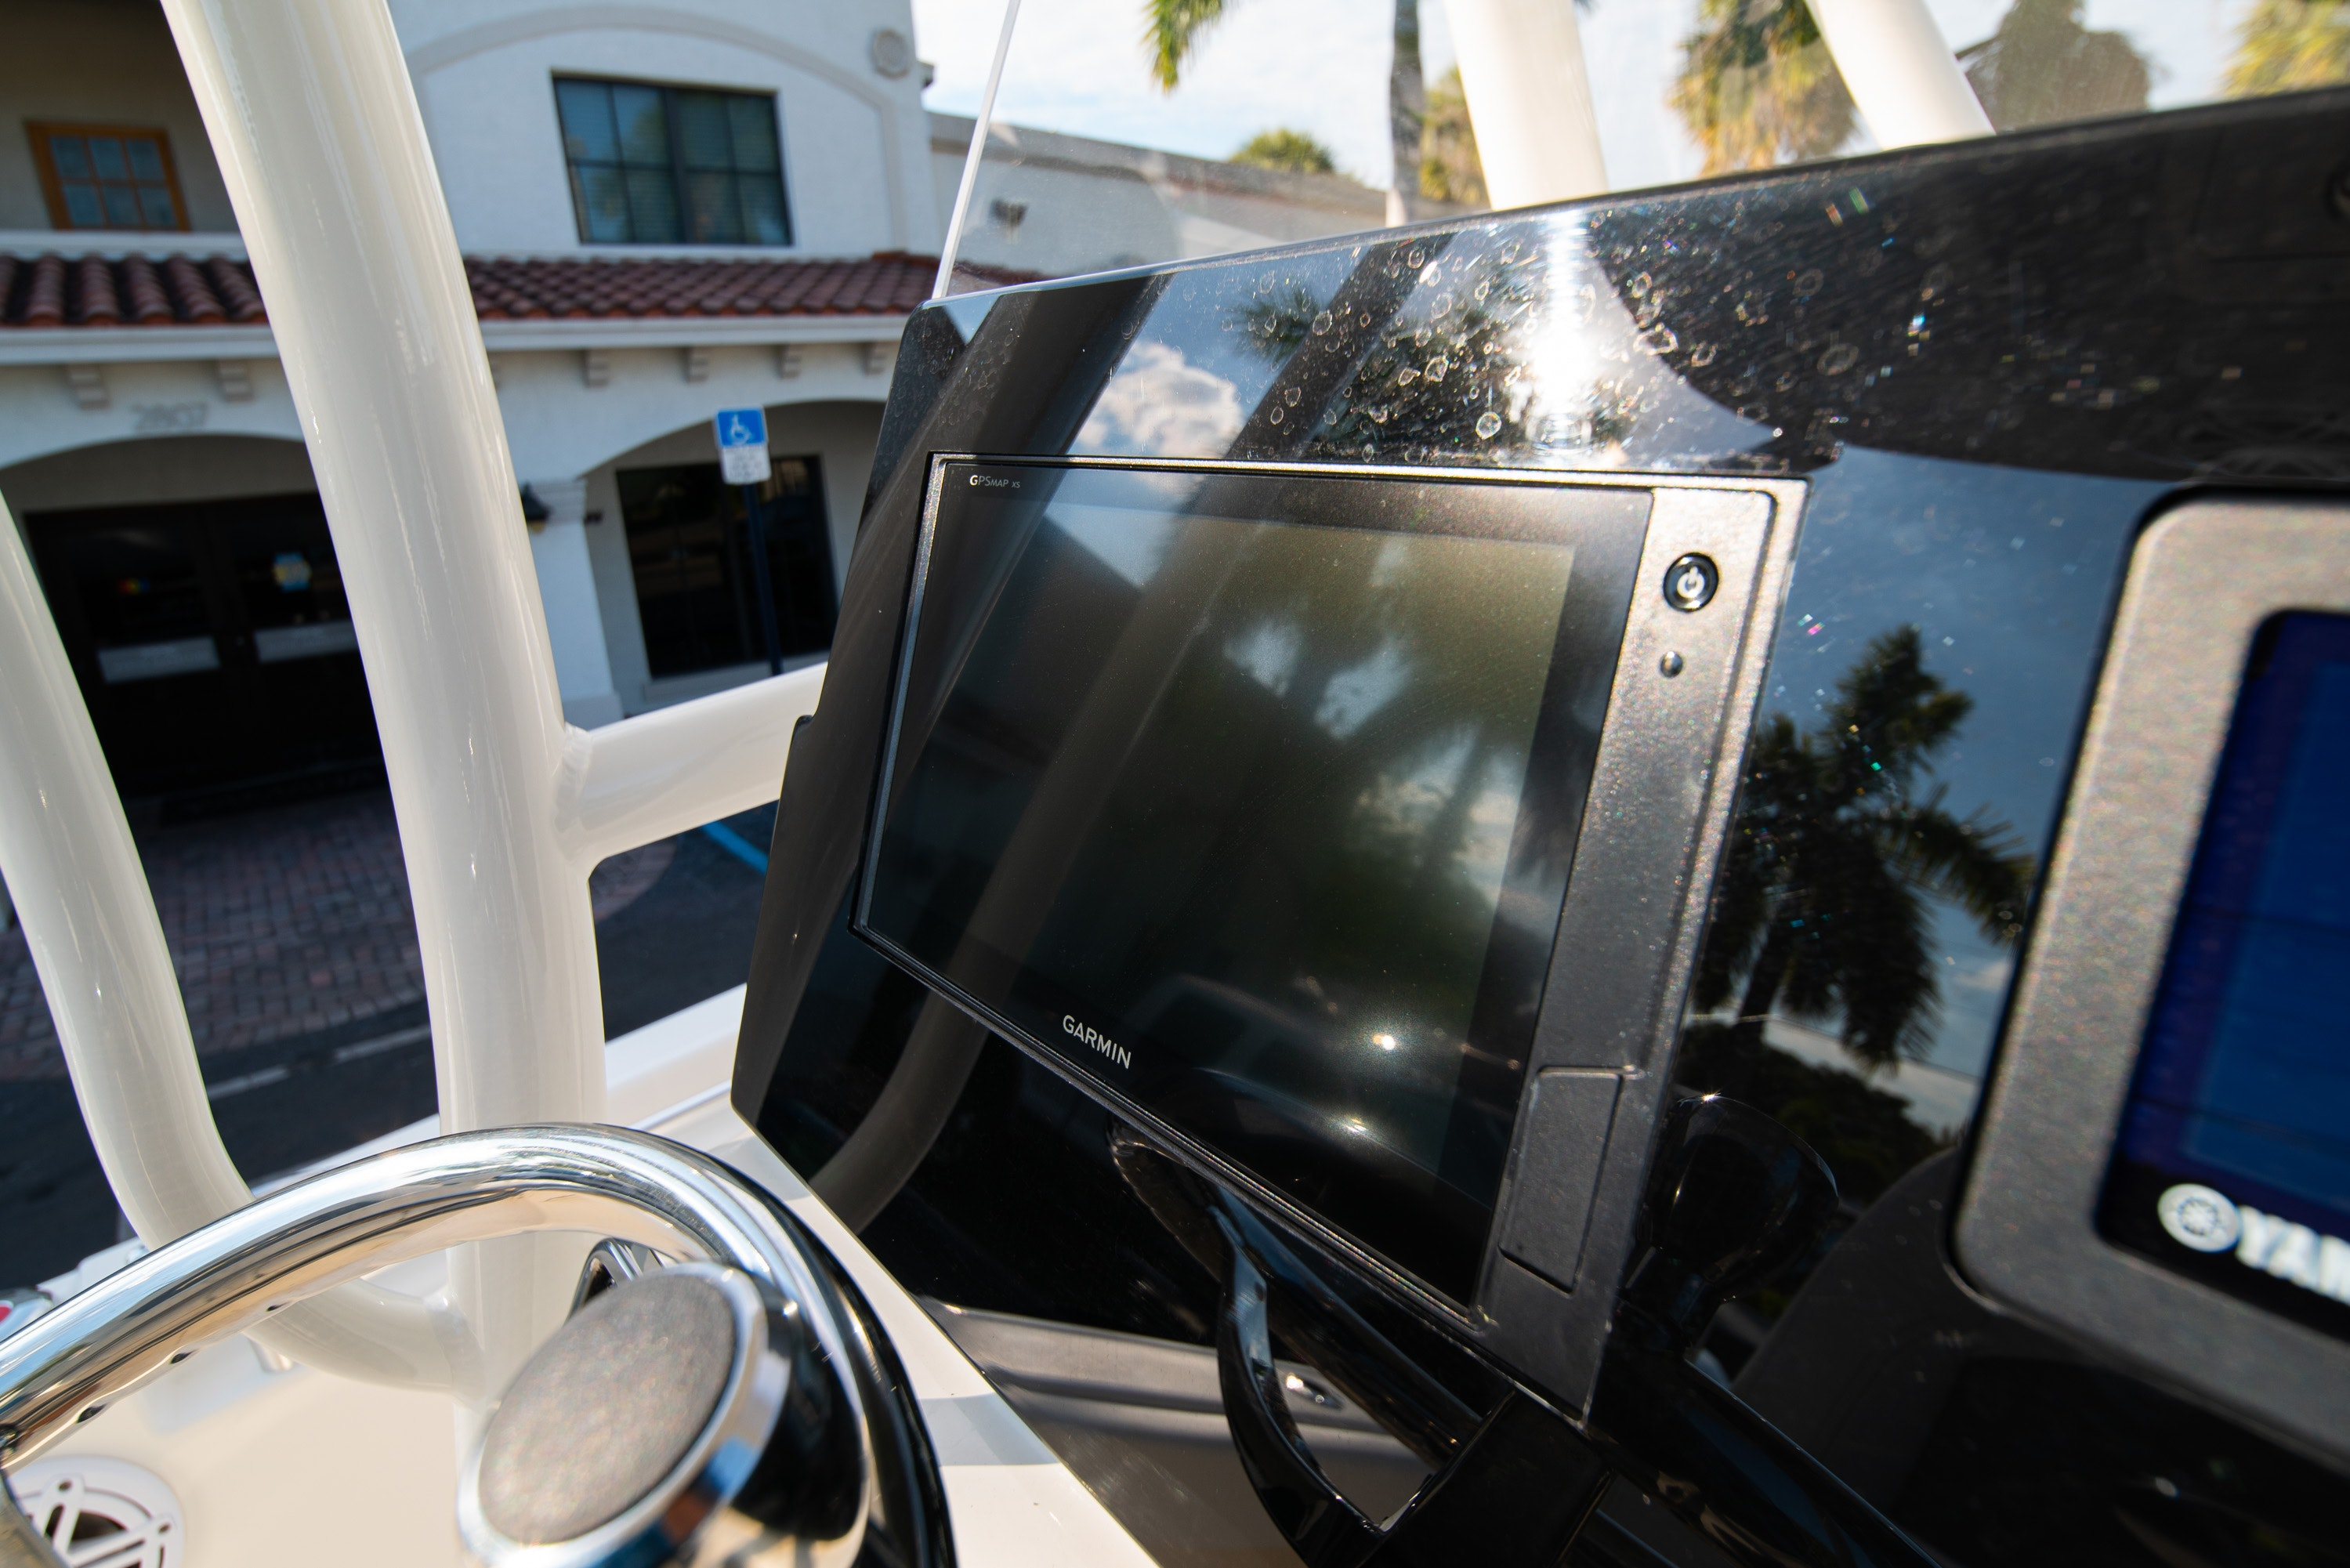 Thumbnail 23 for New 2020 Cobia 220 CC boat for sale in West Palm Beach, FL